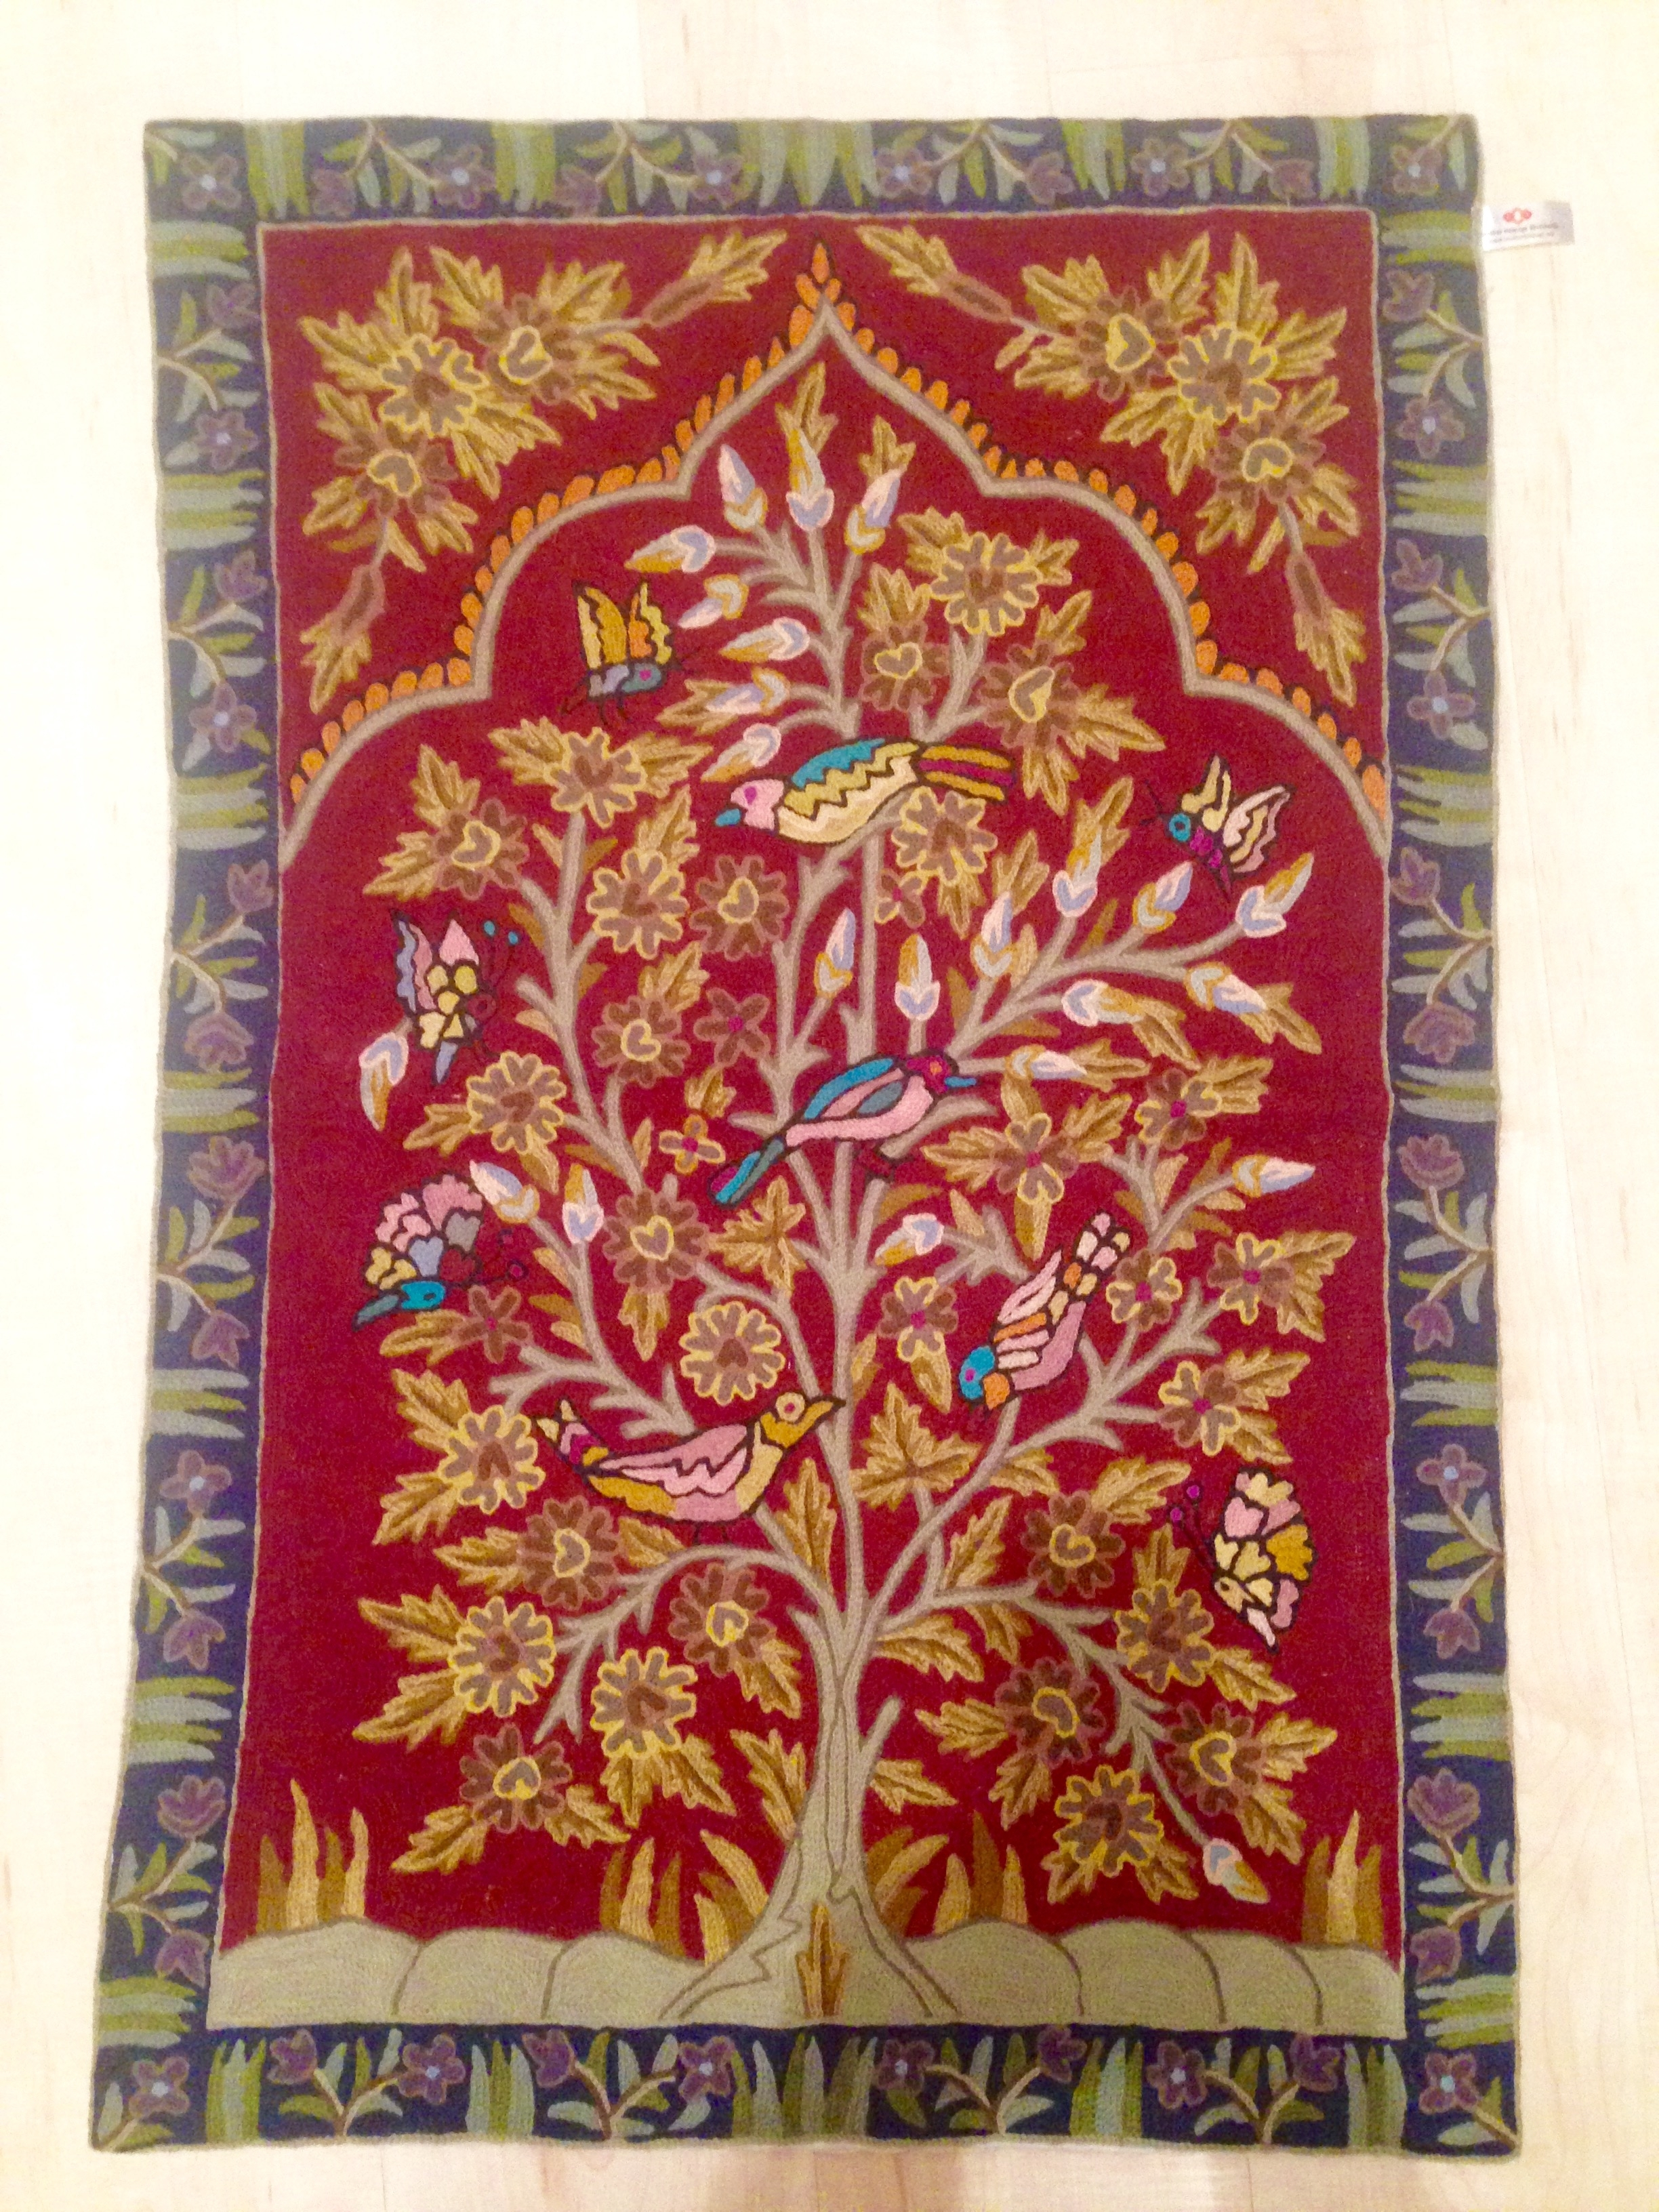 Handmade Kashmiri Wool Embroidery Wall Hanging Tapestry | Indian With Current Handmade Textile Wall Art (View 4 of 15)